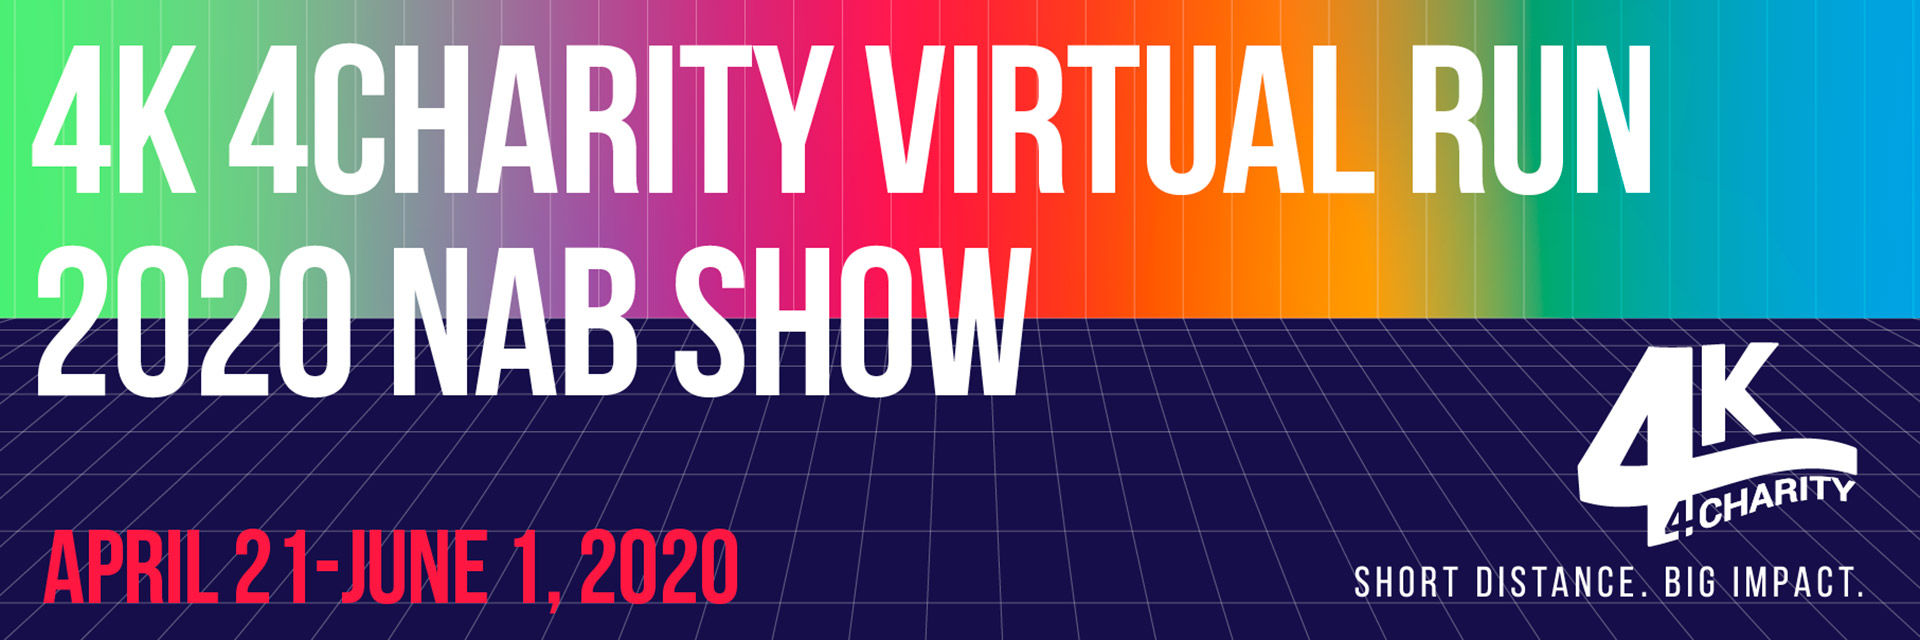 4K 4Charity Virtual Run – 2020 NAB Show